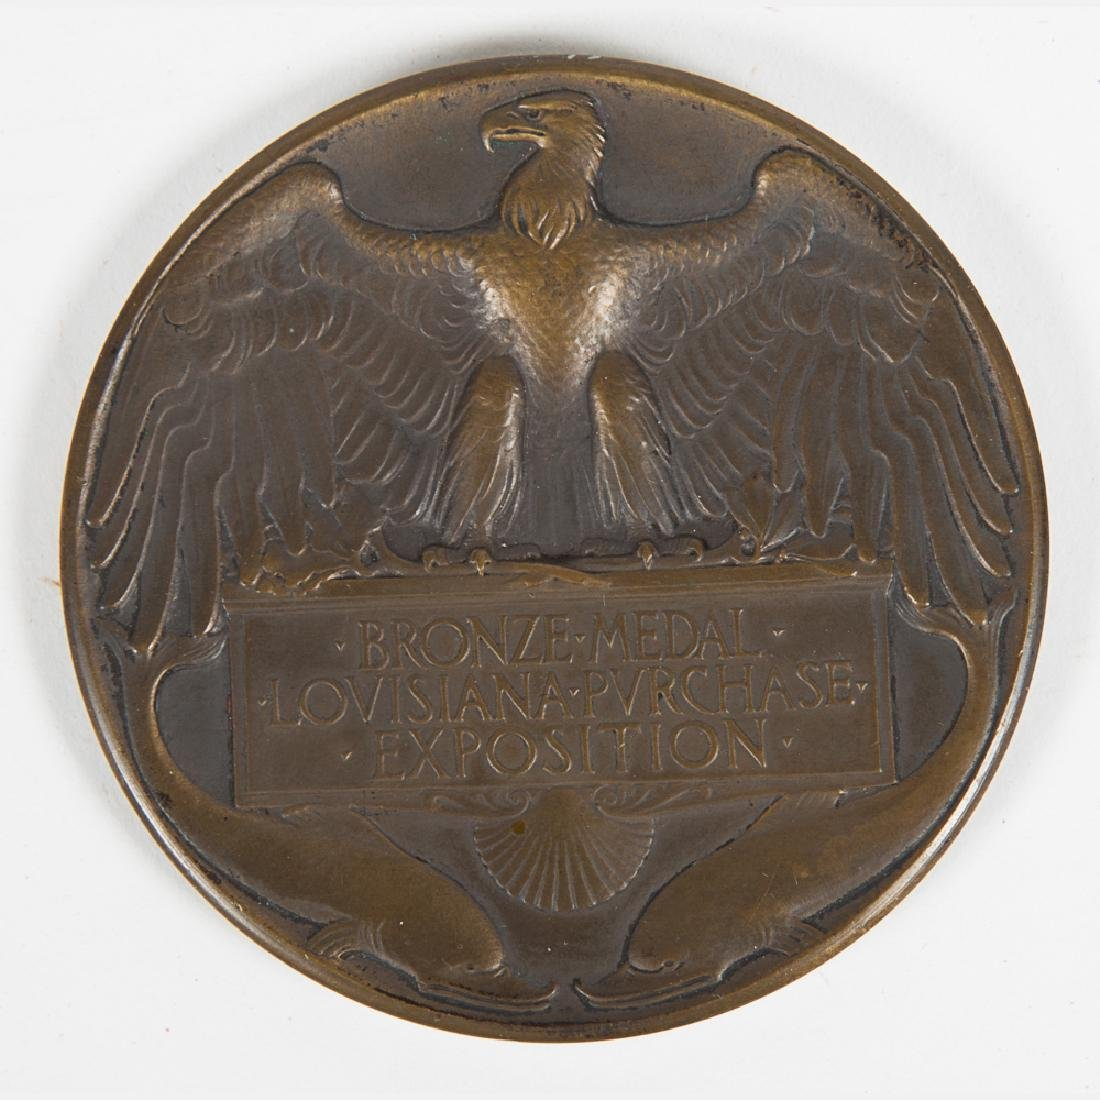 A Bronze Award Medal in the Original Presentation Box